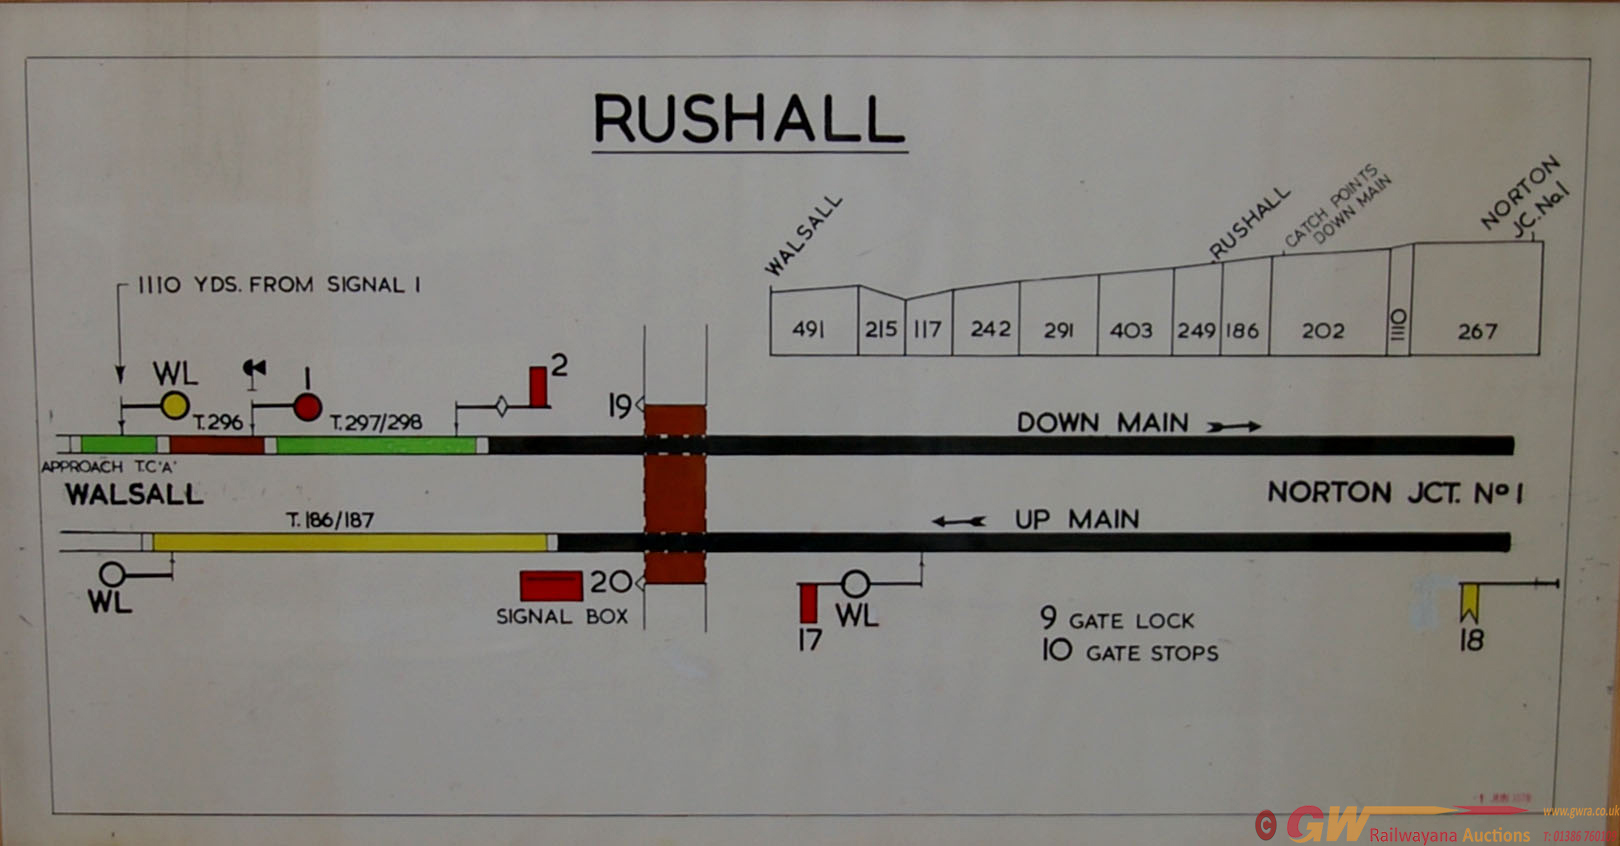 Signal Box Diagram RUSHALL  Dated 1st June 1978.